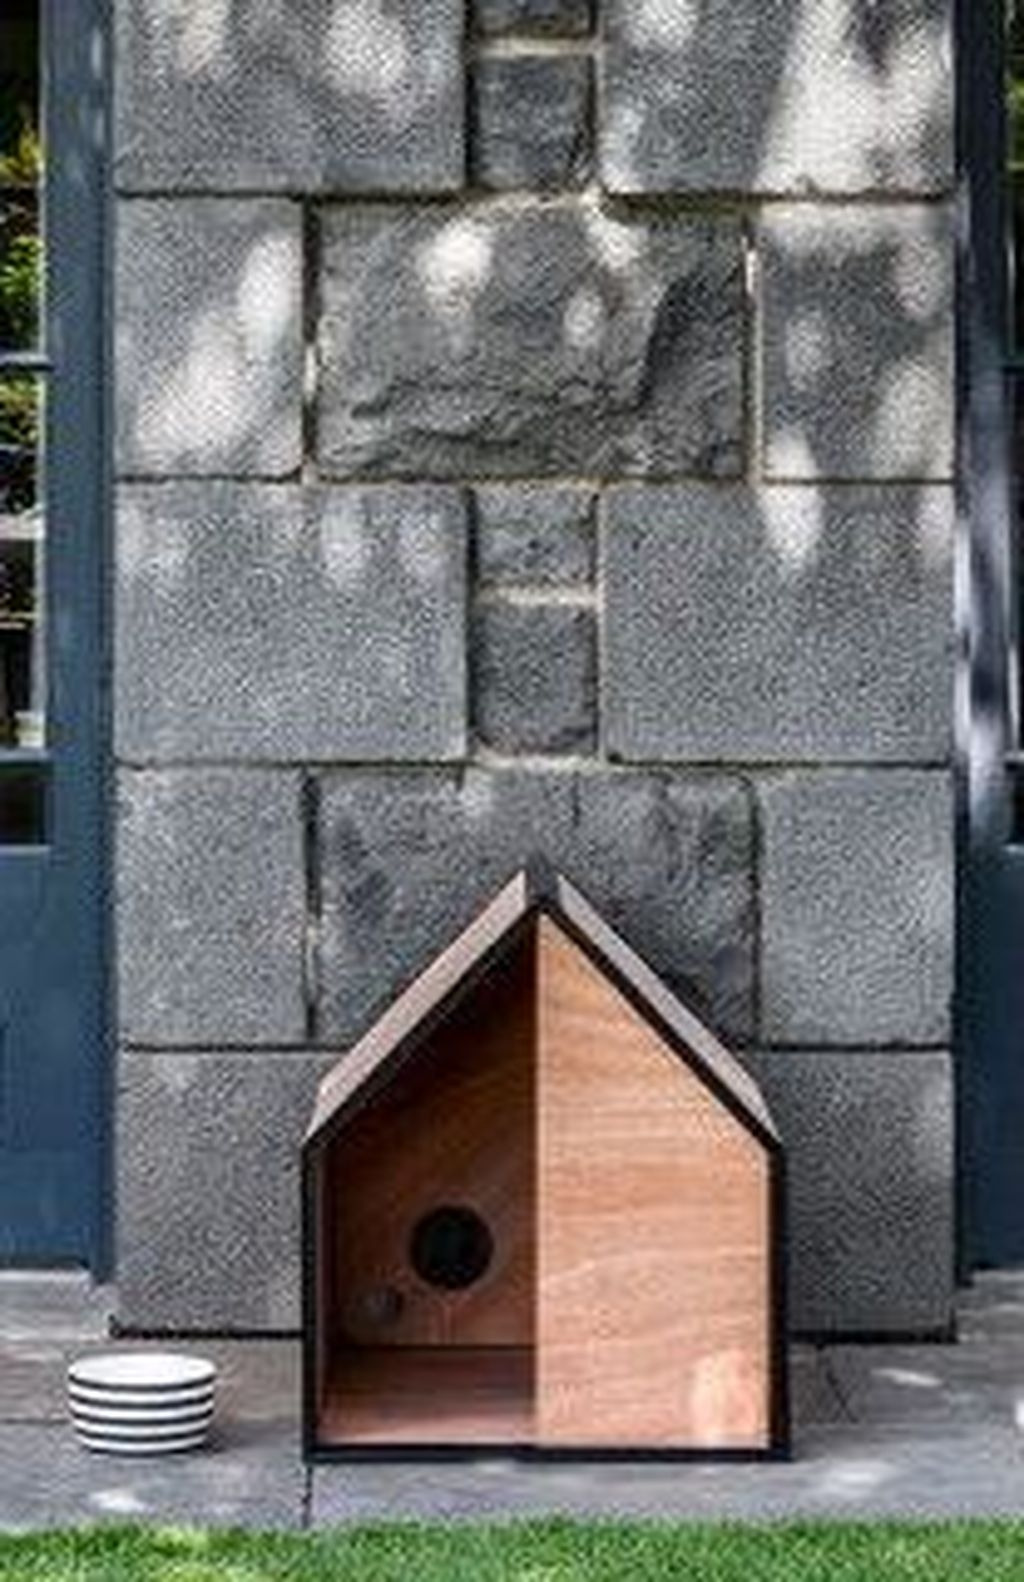 Best Dog House Plans New 31 Best Dog House Design Ideas with Modern Concept that